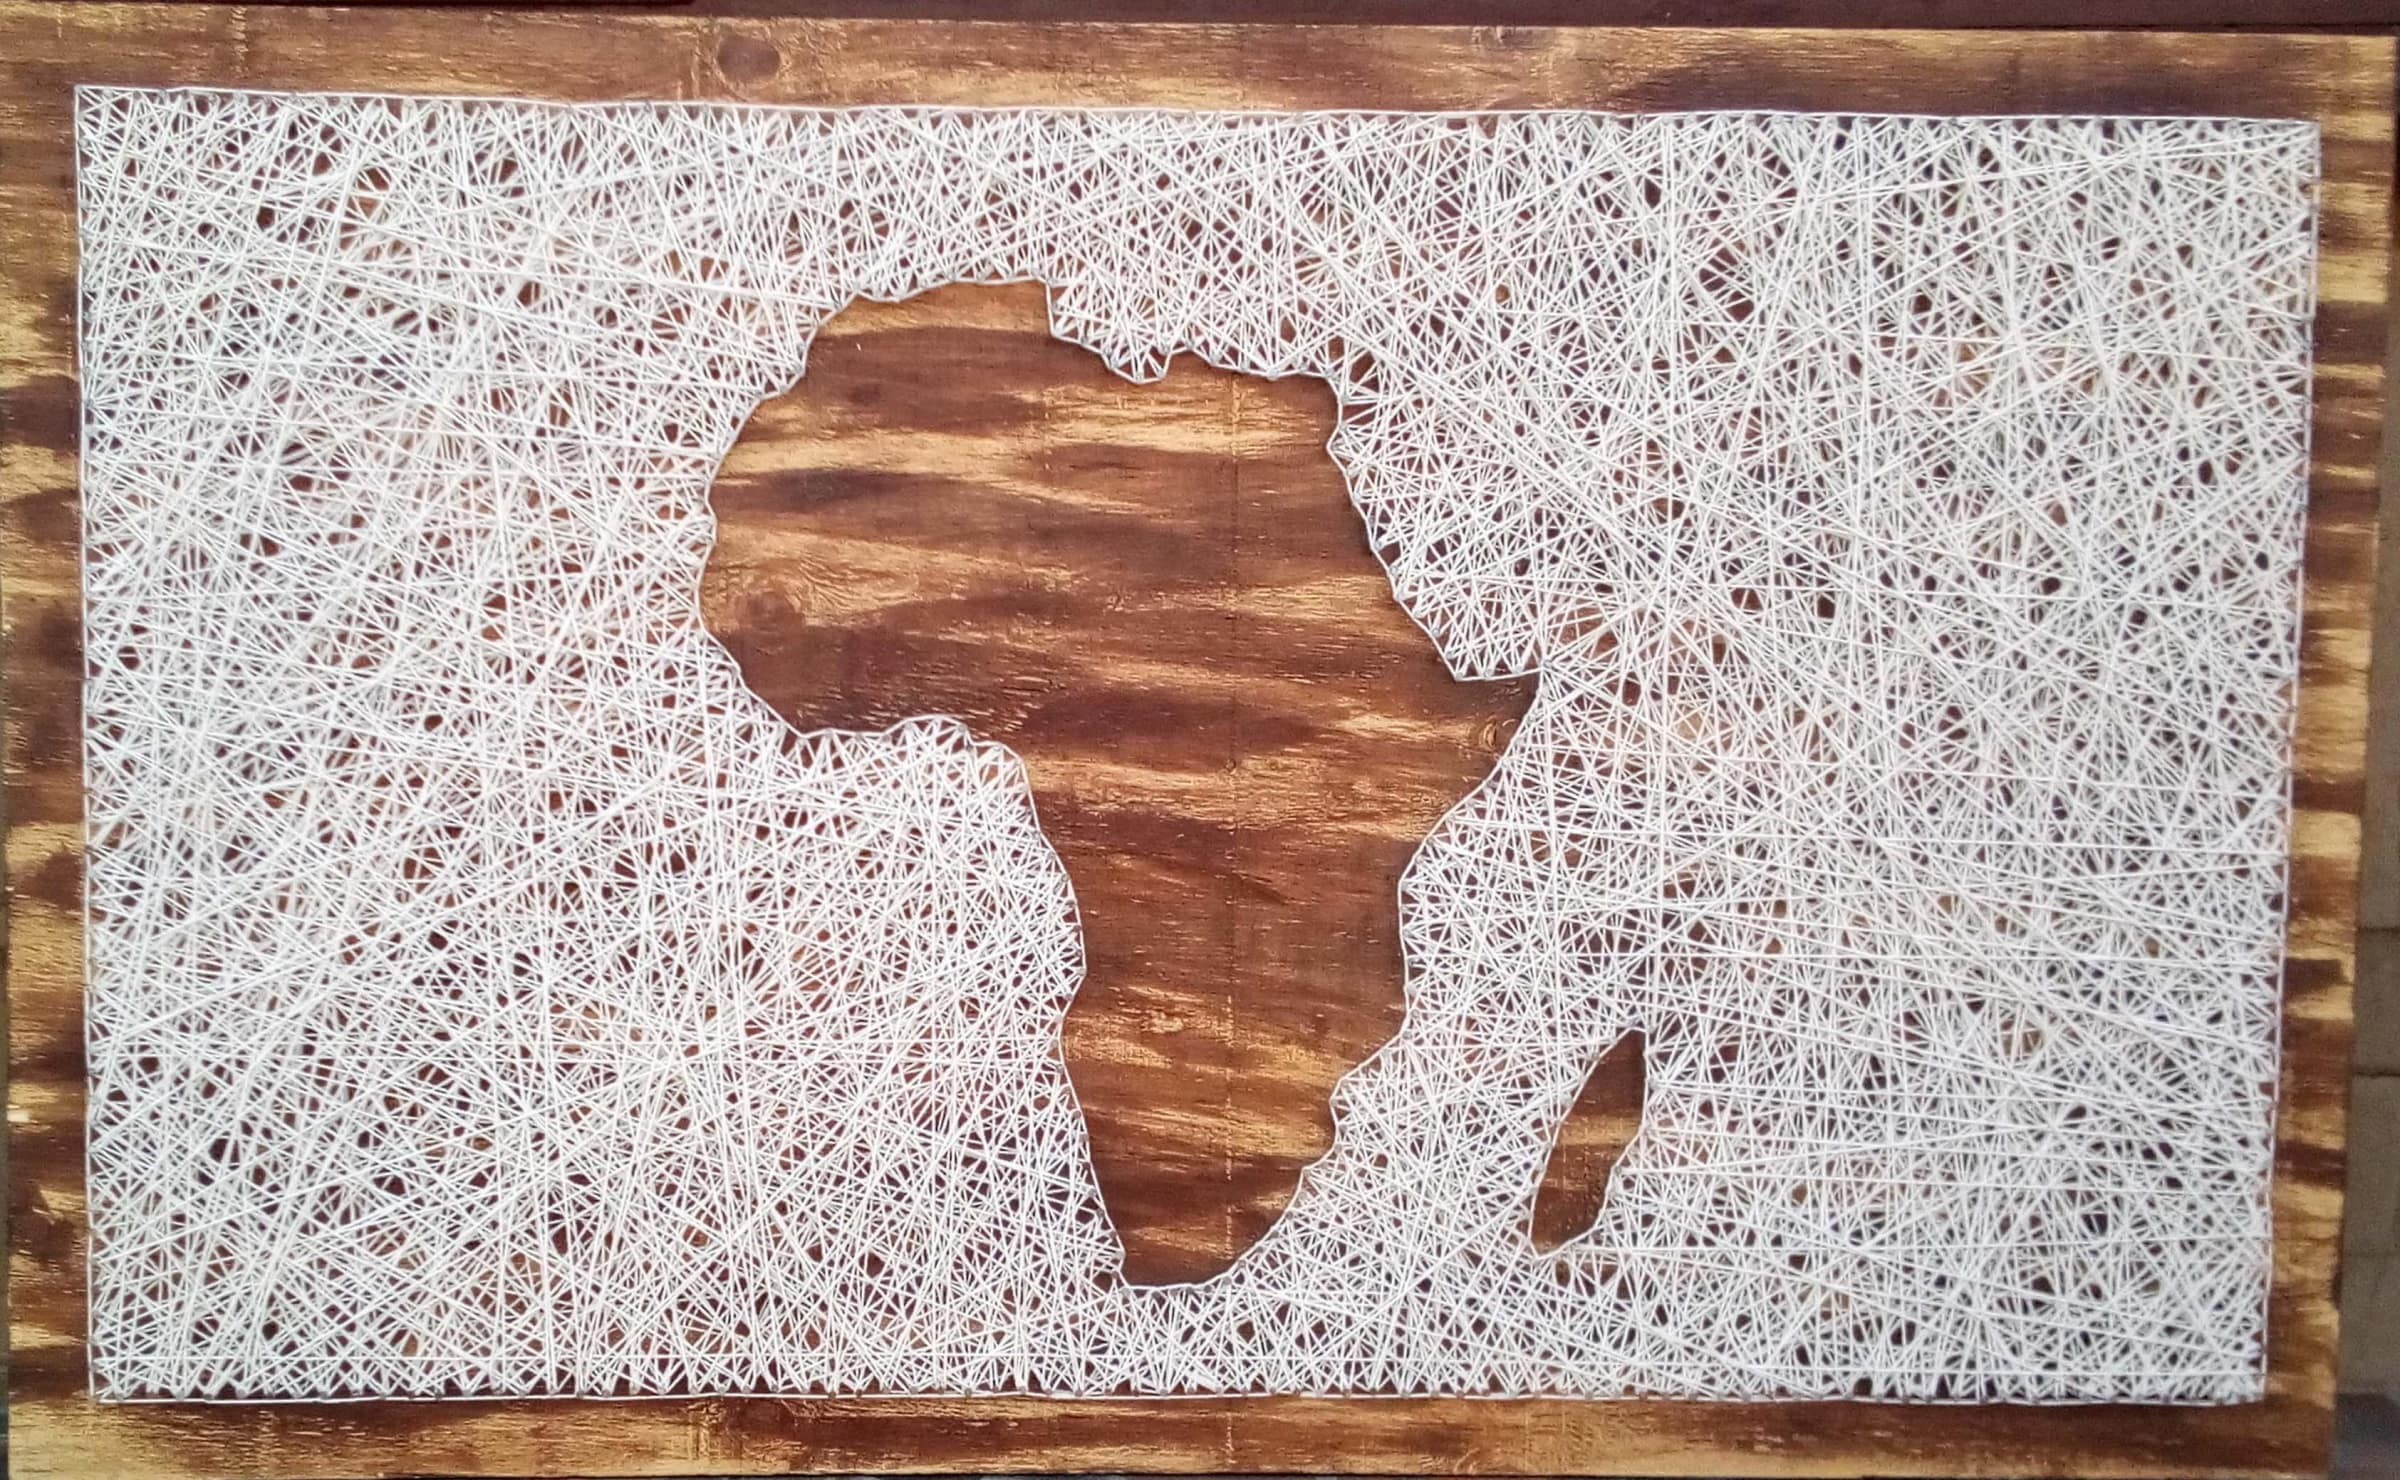 <span class=&#34;link fancybox-details-link&#34;><a href=&#34;/artists/50-lerato-motaung/works/3128-lerato-motaung-africa-2017/&#34;>View Detail Page</a></span><div class=&#34;artist&#34;><strong>Lerato Motaung</strong></div> <div class=&#34;title&#34;><em>Africa</em>, 2017</div> <div class=&#34;medium&#34;>Wood, Nails & String</div> <div class=&#34;dimensions&#34;>80cm x 130cm</div> <div class=&#34;edition_details&#34;>4/15</div><div class=&#34;price&#34;>R7,000.00</div>